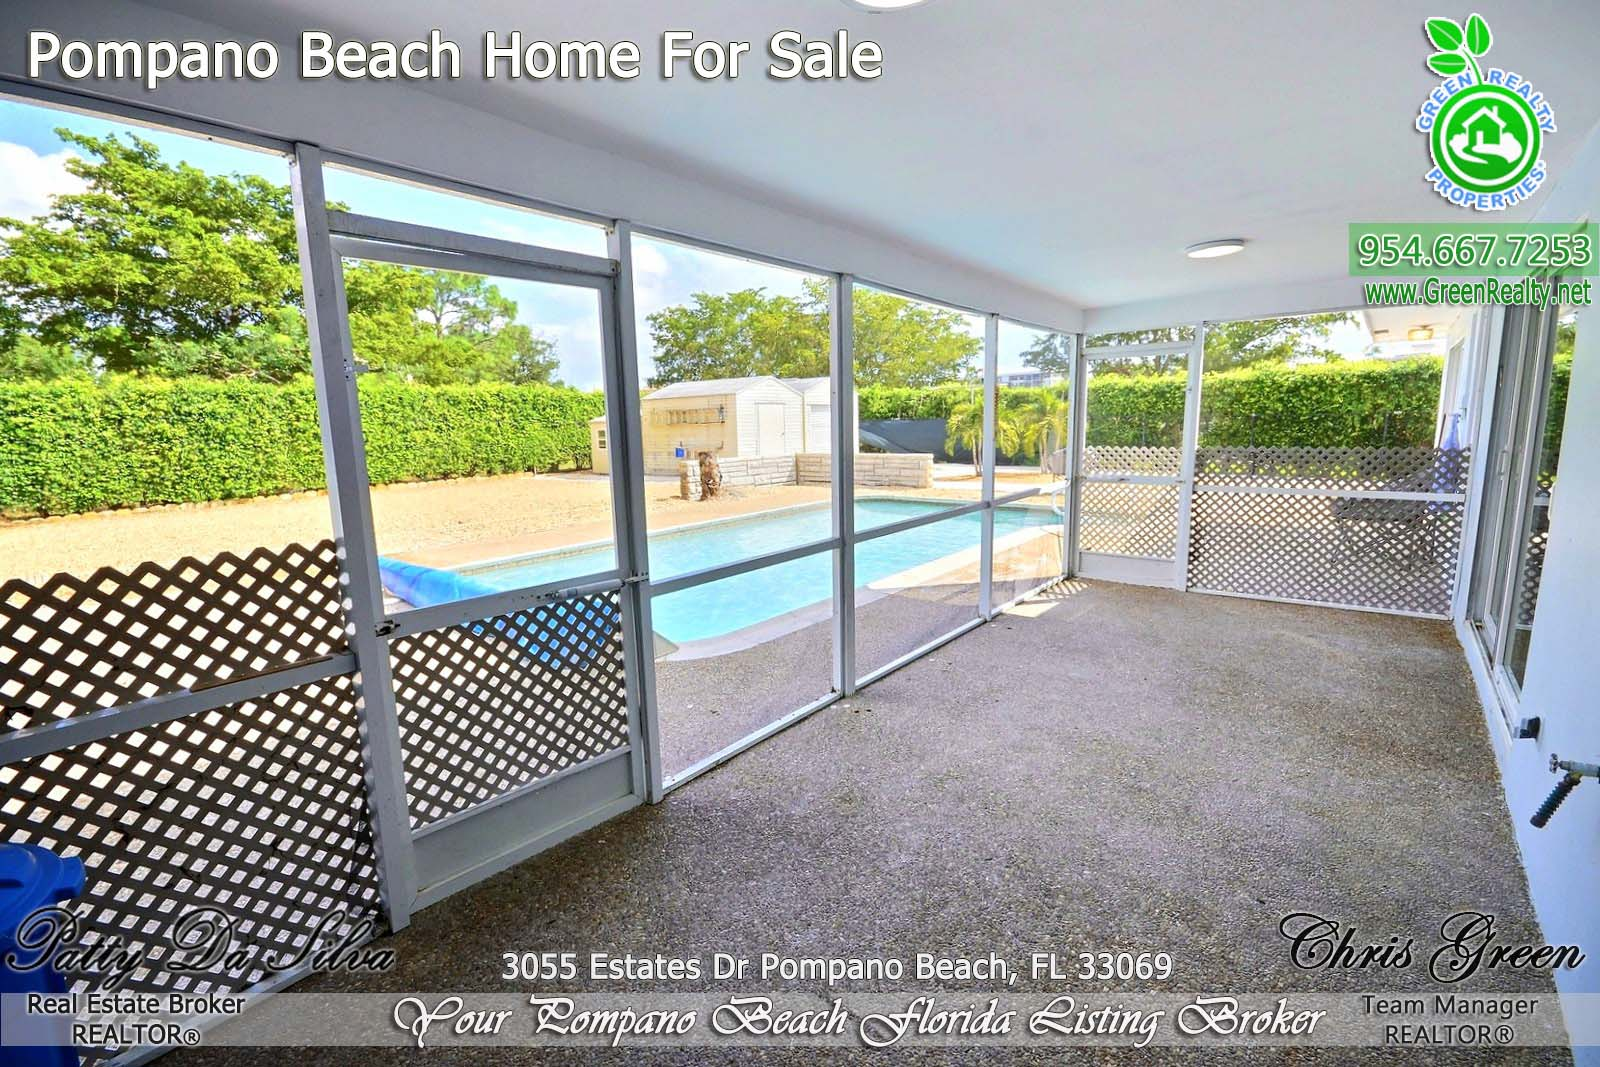 31 Homes For Sale in Pompano Beach (9)